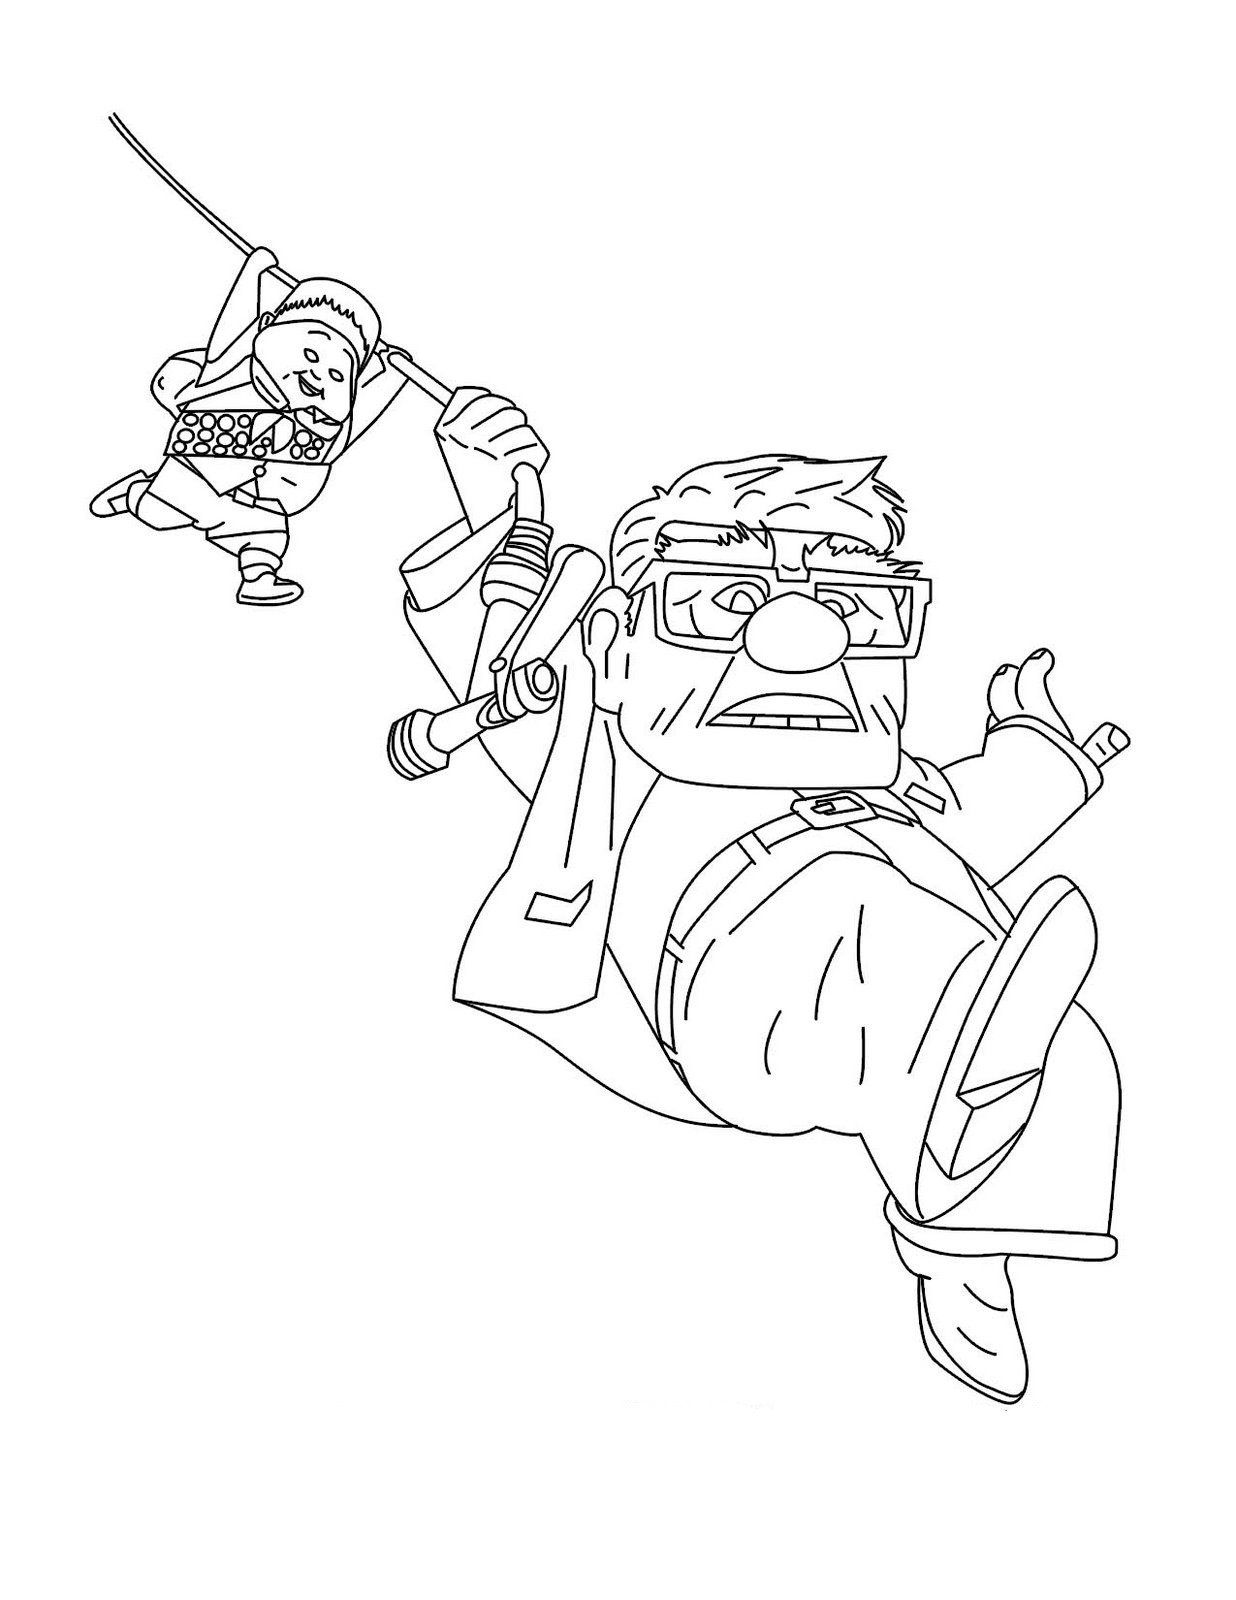 Sinu Laps Cartoon Coloring Pages Coloring Pages Disney Coloring Pages